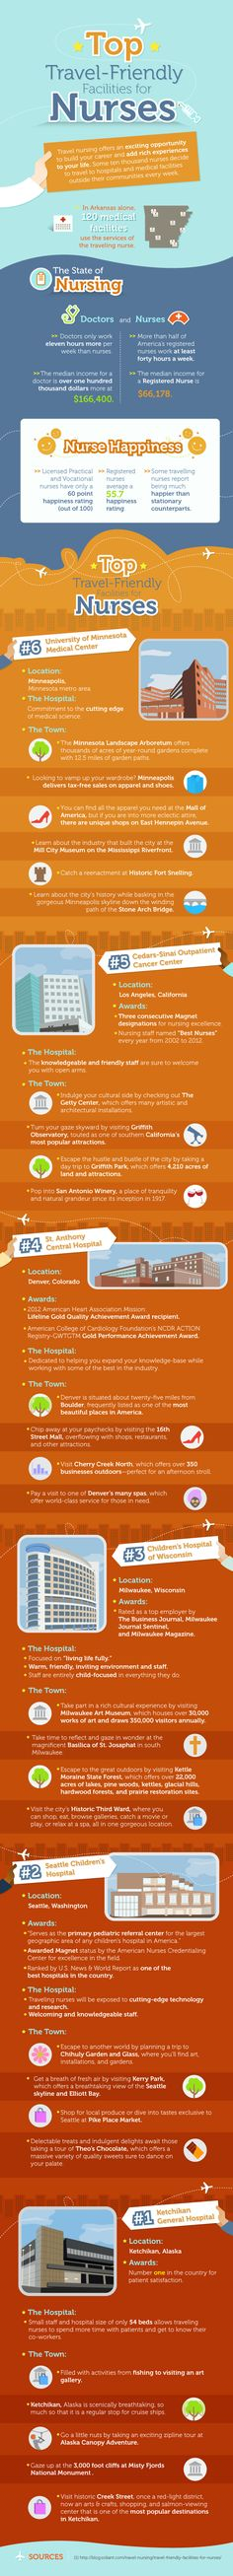 infographic the top travel friendly facilities for nurses - Nursing Student Resume